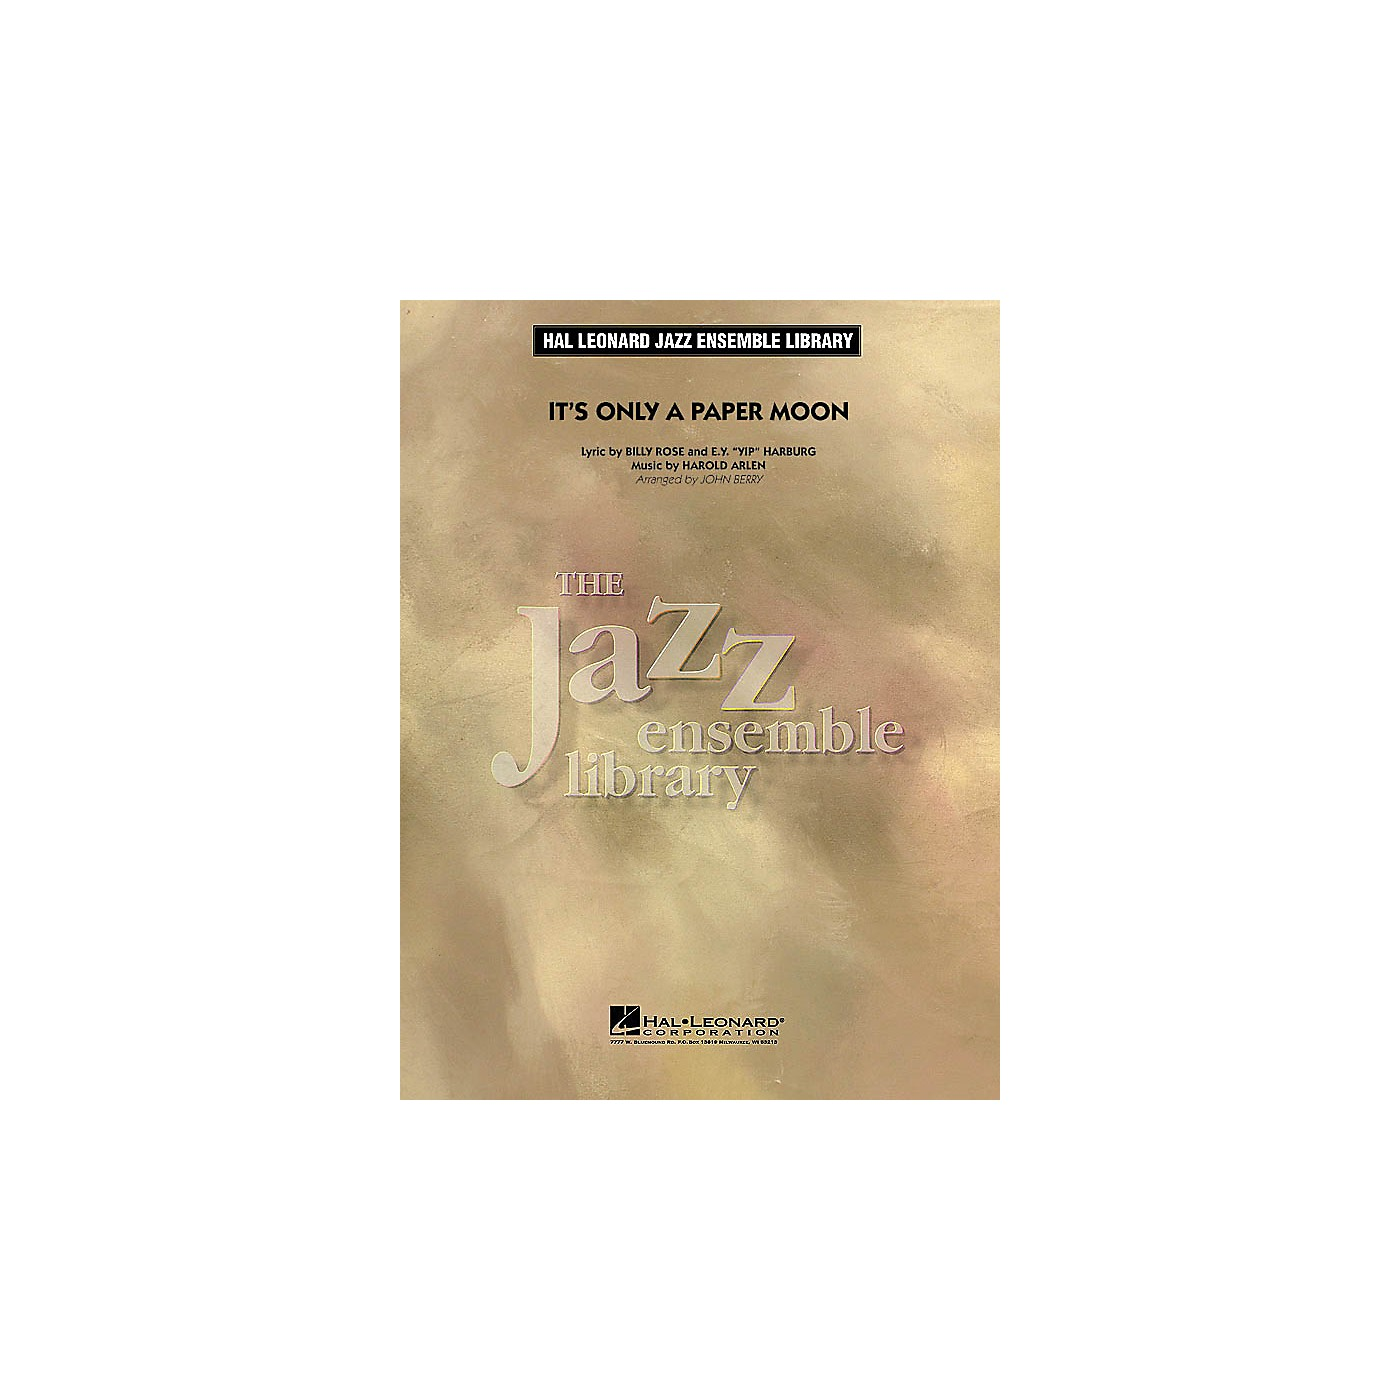 Hal Leonard It's Only a Paper Moon Jazz Band Level 4 Arranged by John Berry thumbnail